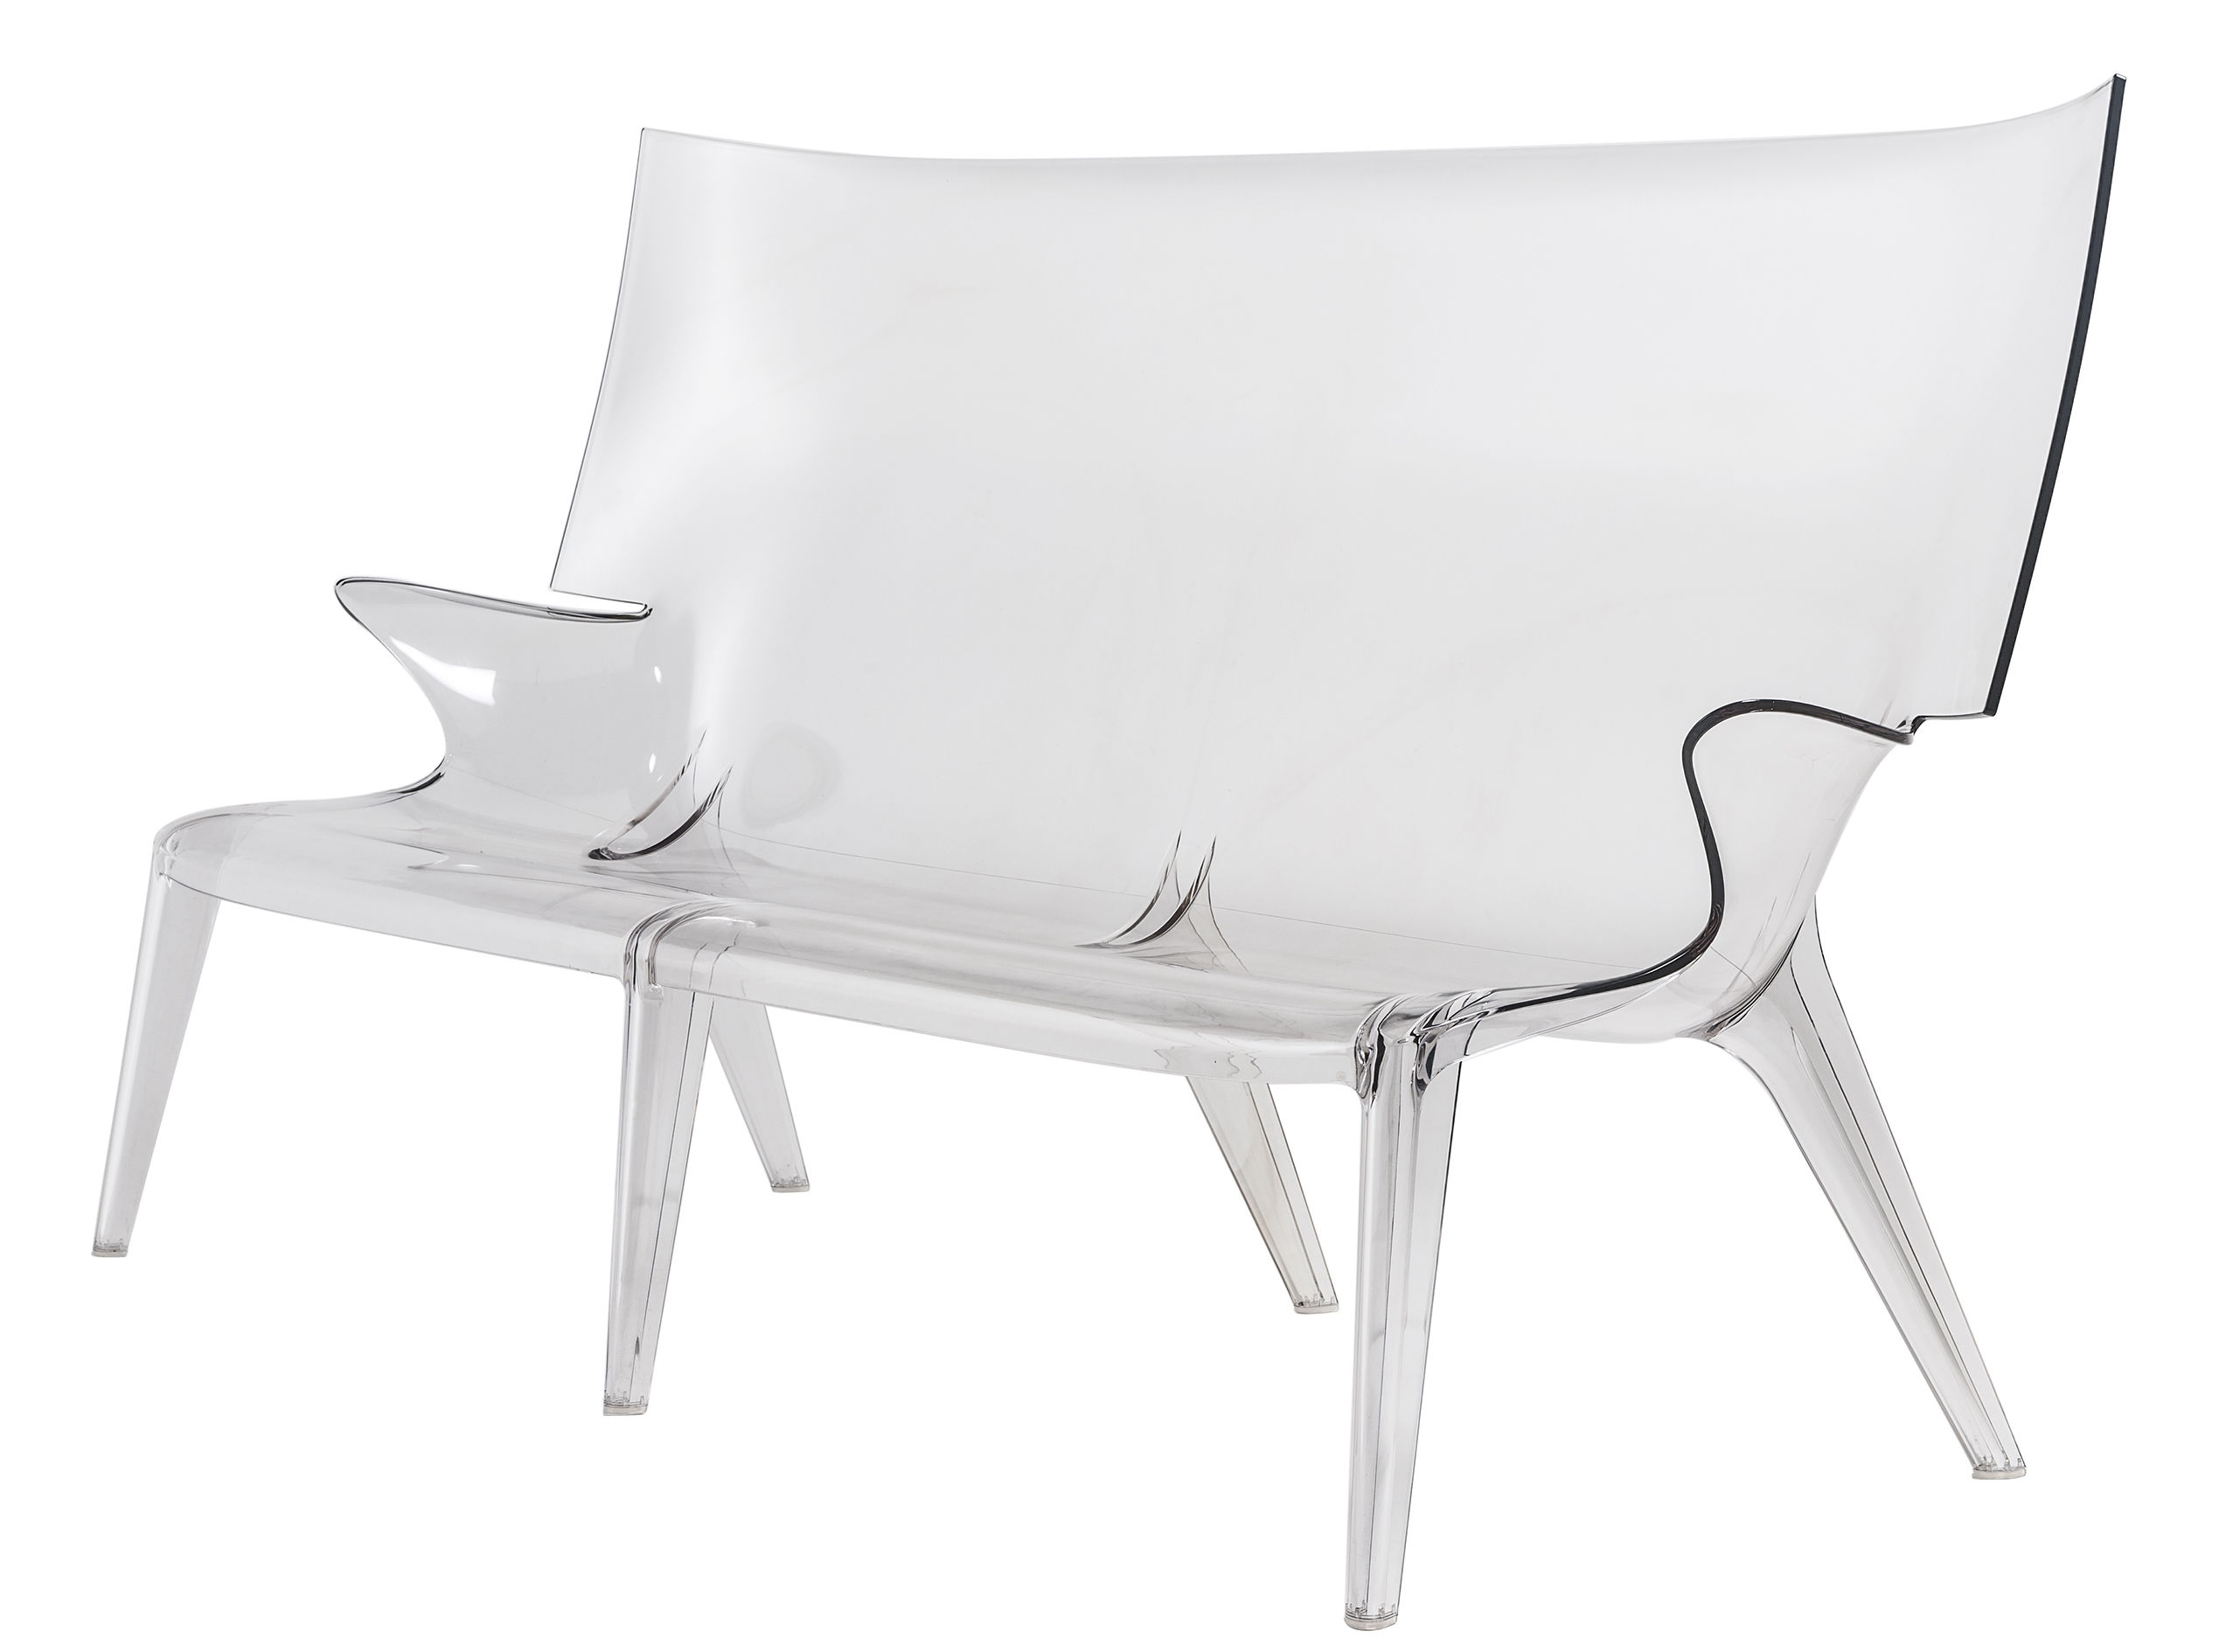 Furniture - Sofas - Uncle Jack Straight sofa by Kartell - Clear - Polycarbonate